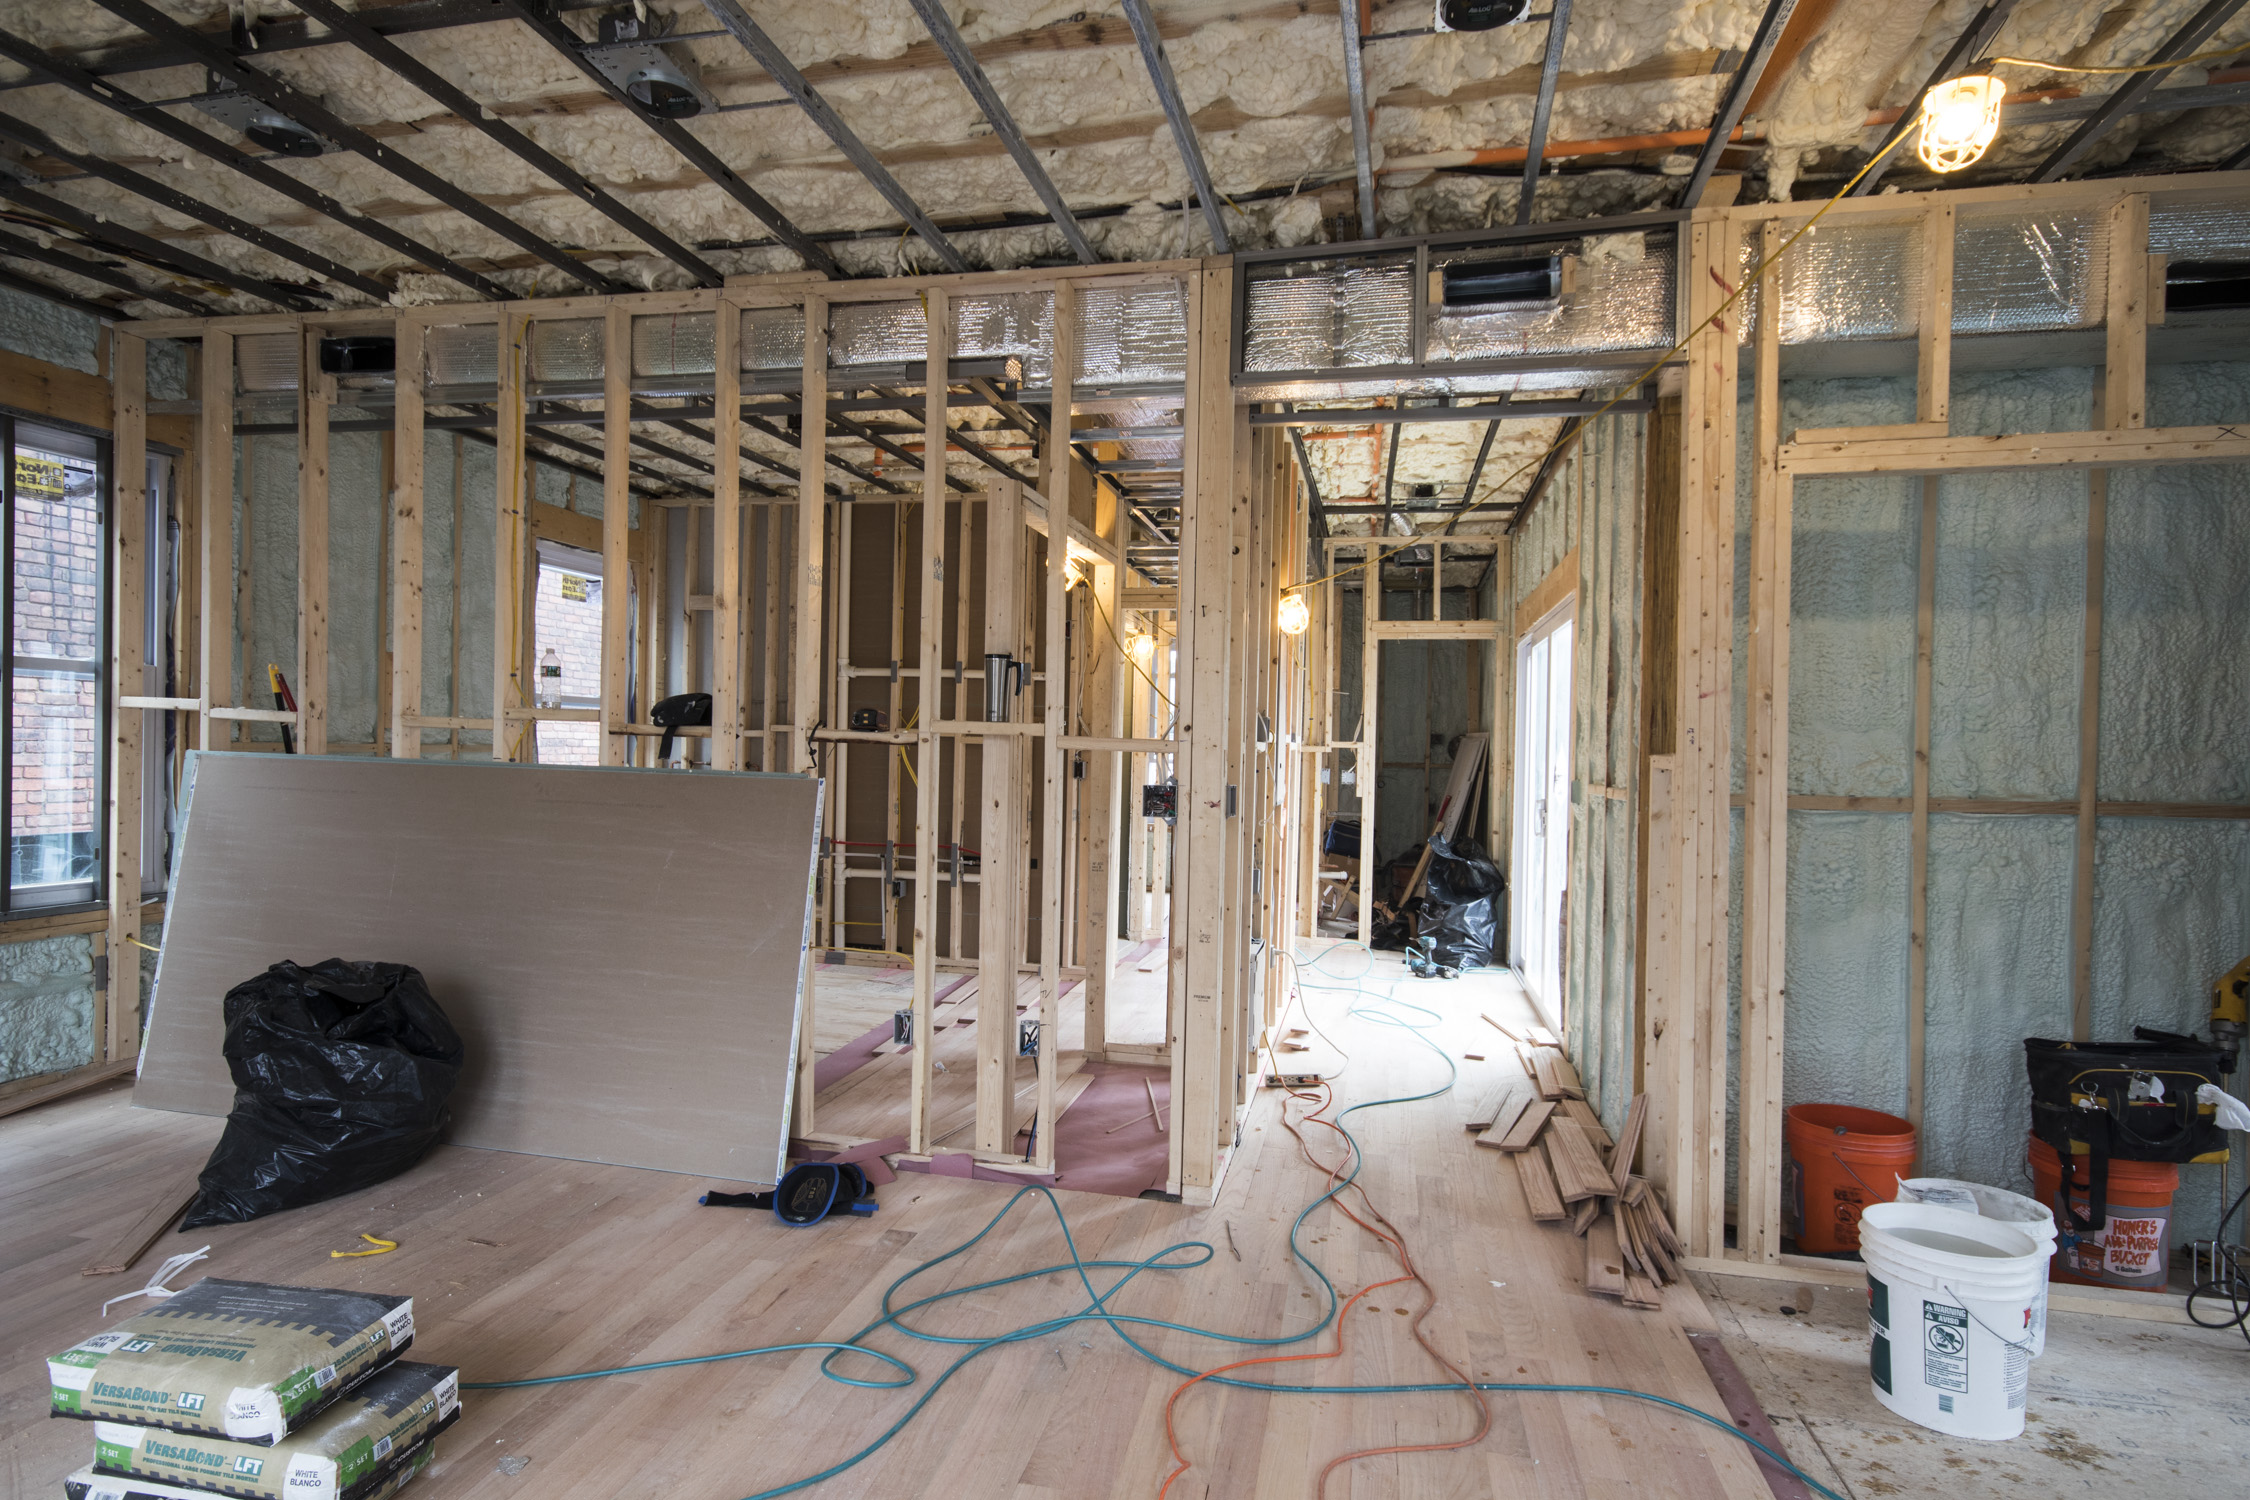 83 parker street home renovation boston general contractor_12